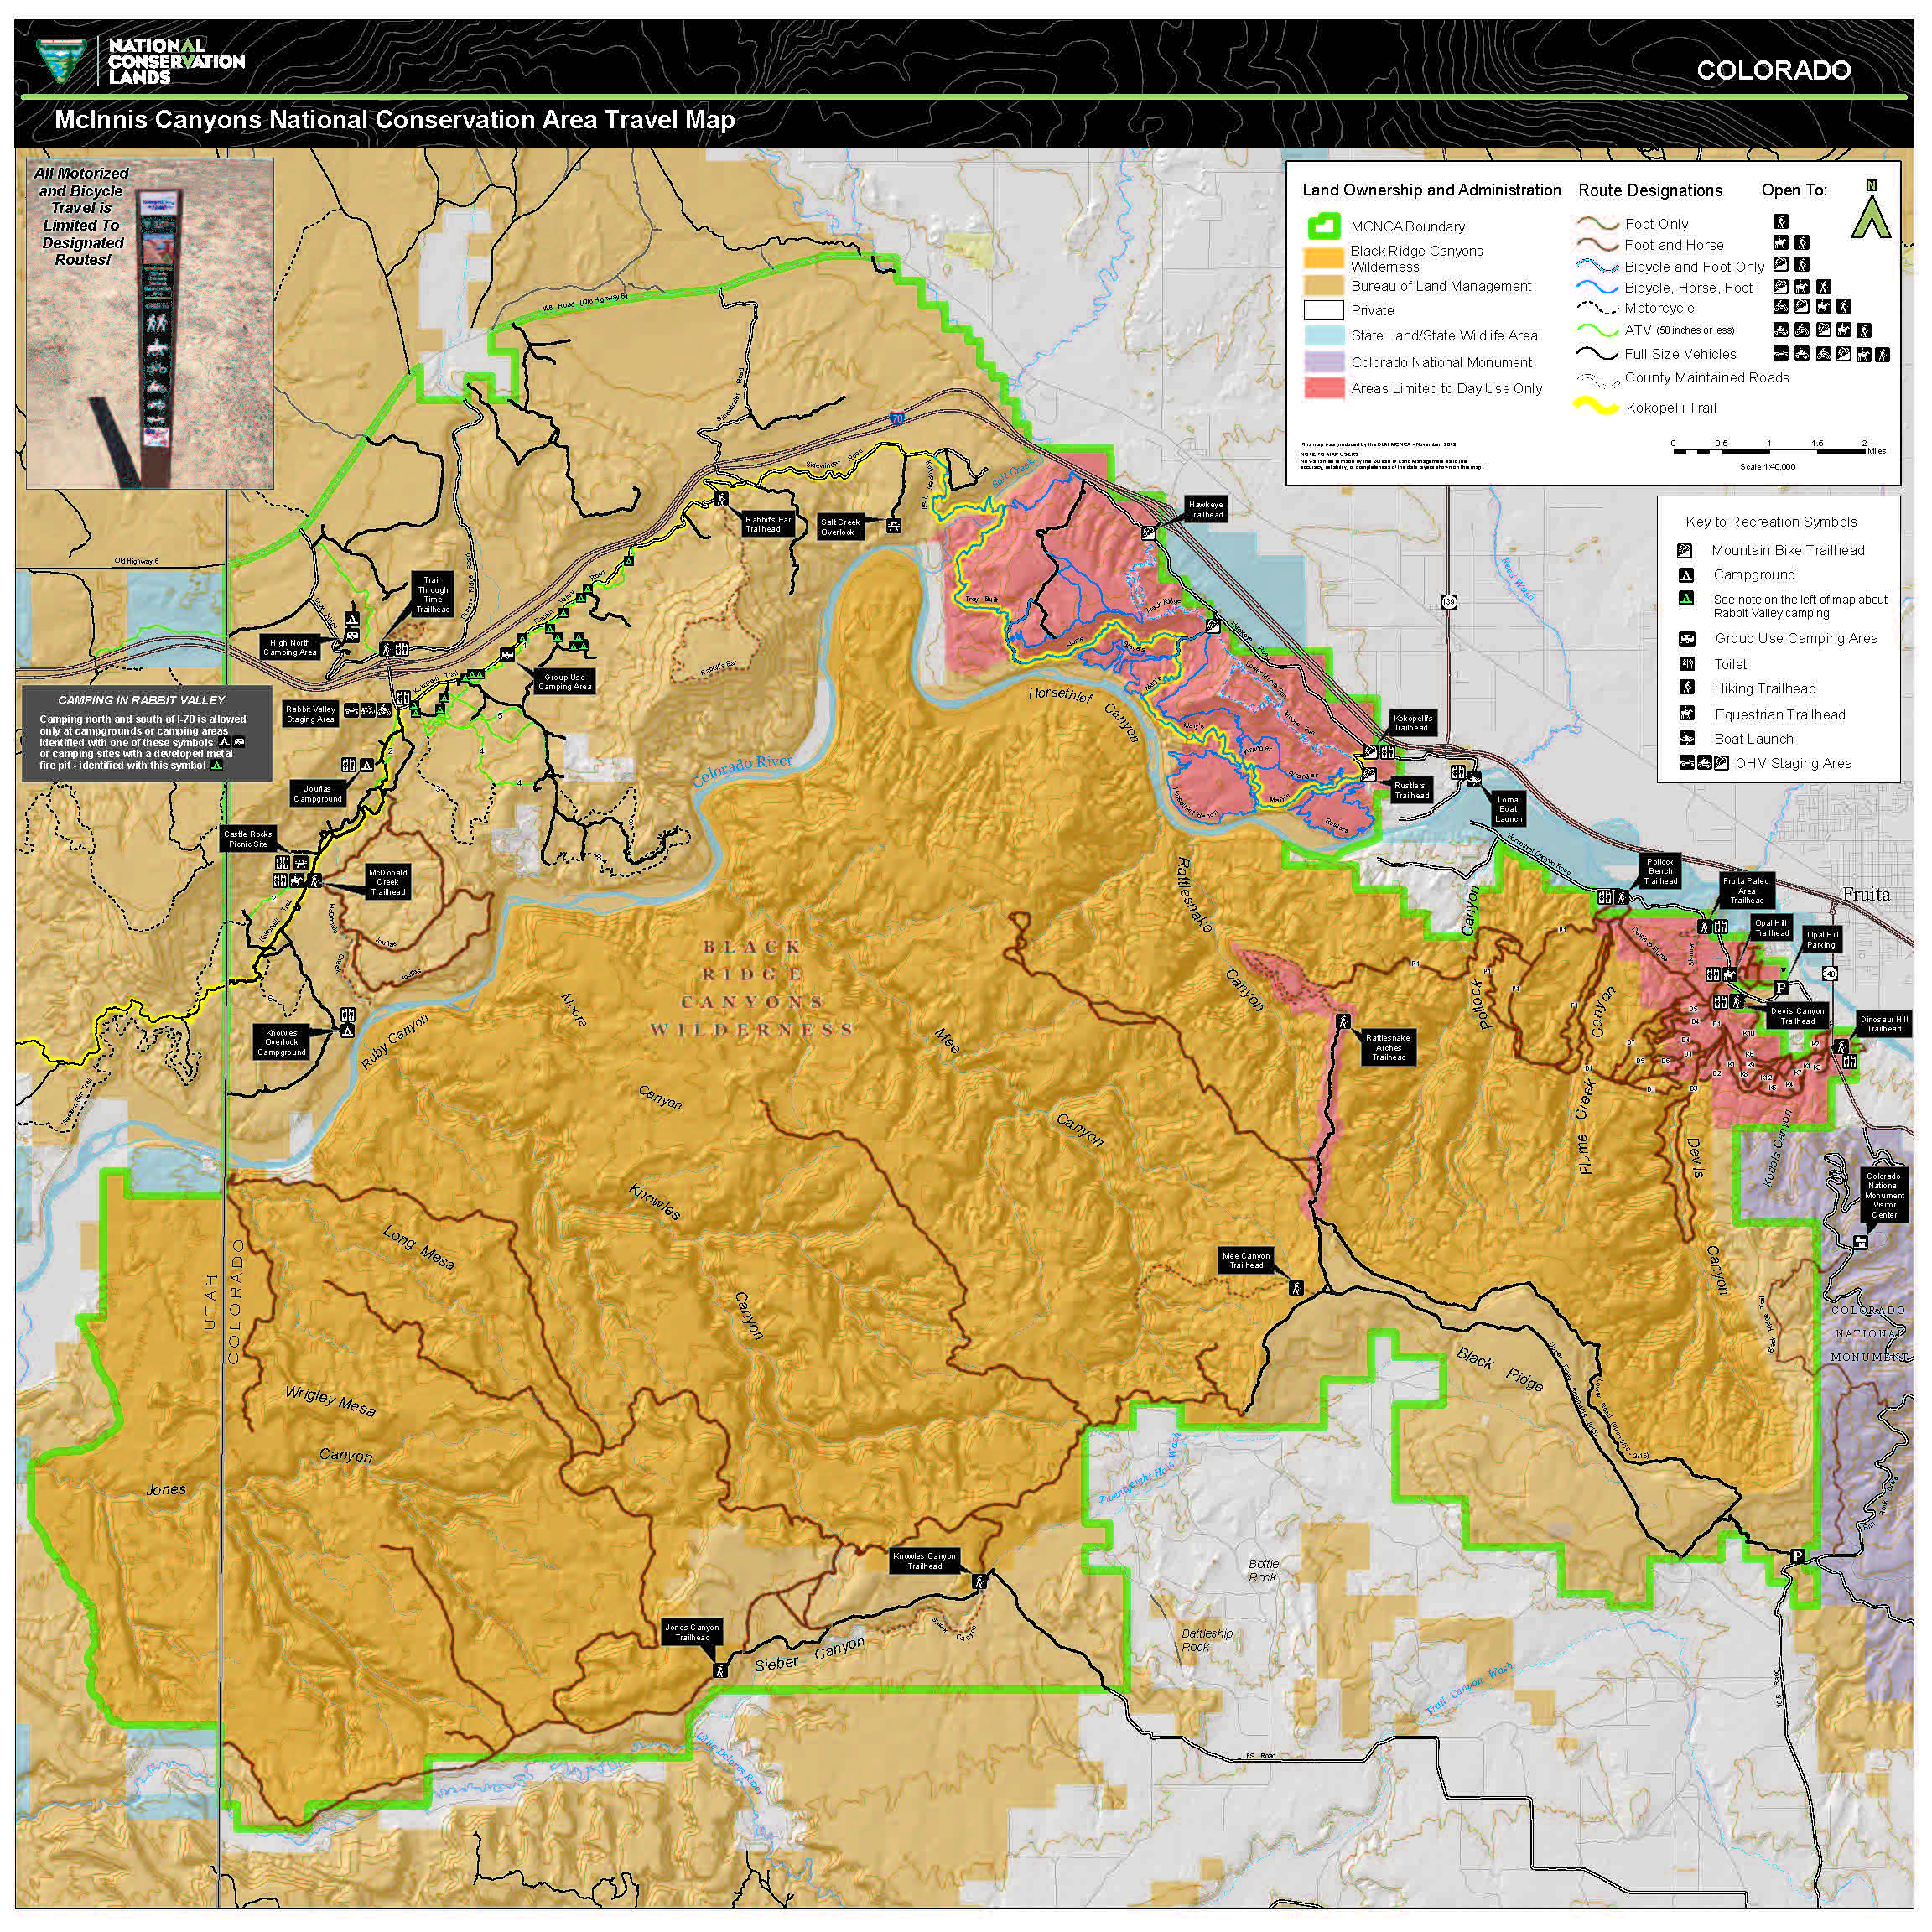 Mcinnis canyons national conservation area mcnca travel map mcinnis canyons national conservation area mcnca travel map gumiabroncs Choice Image